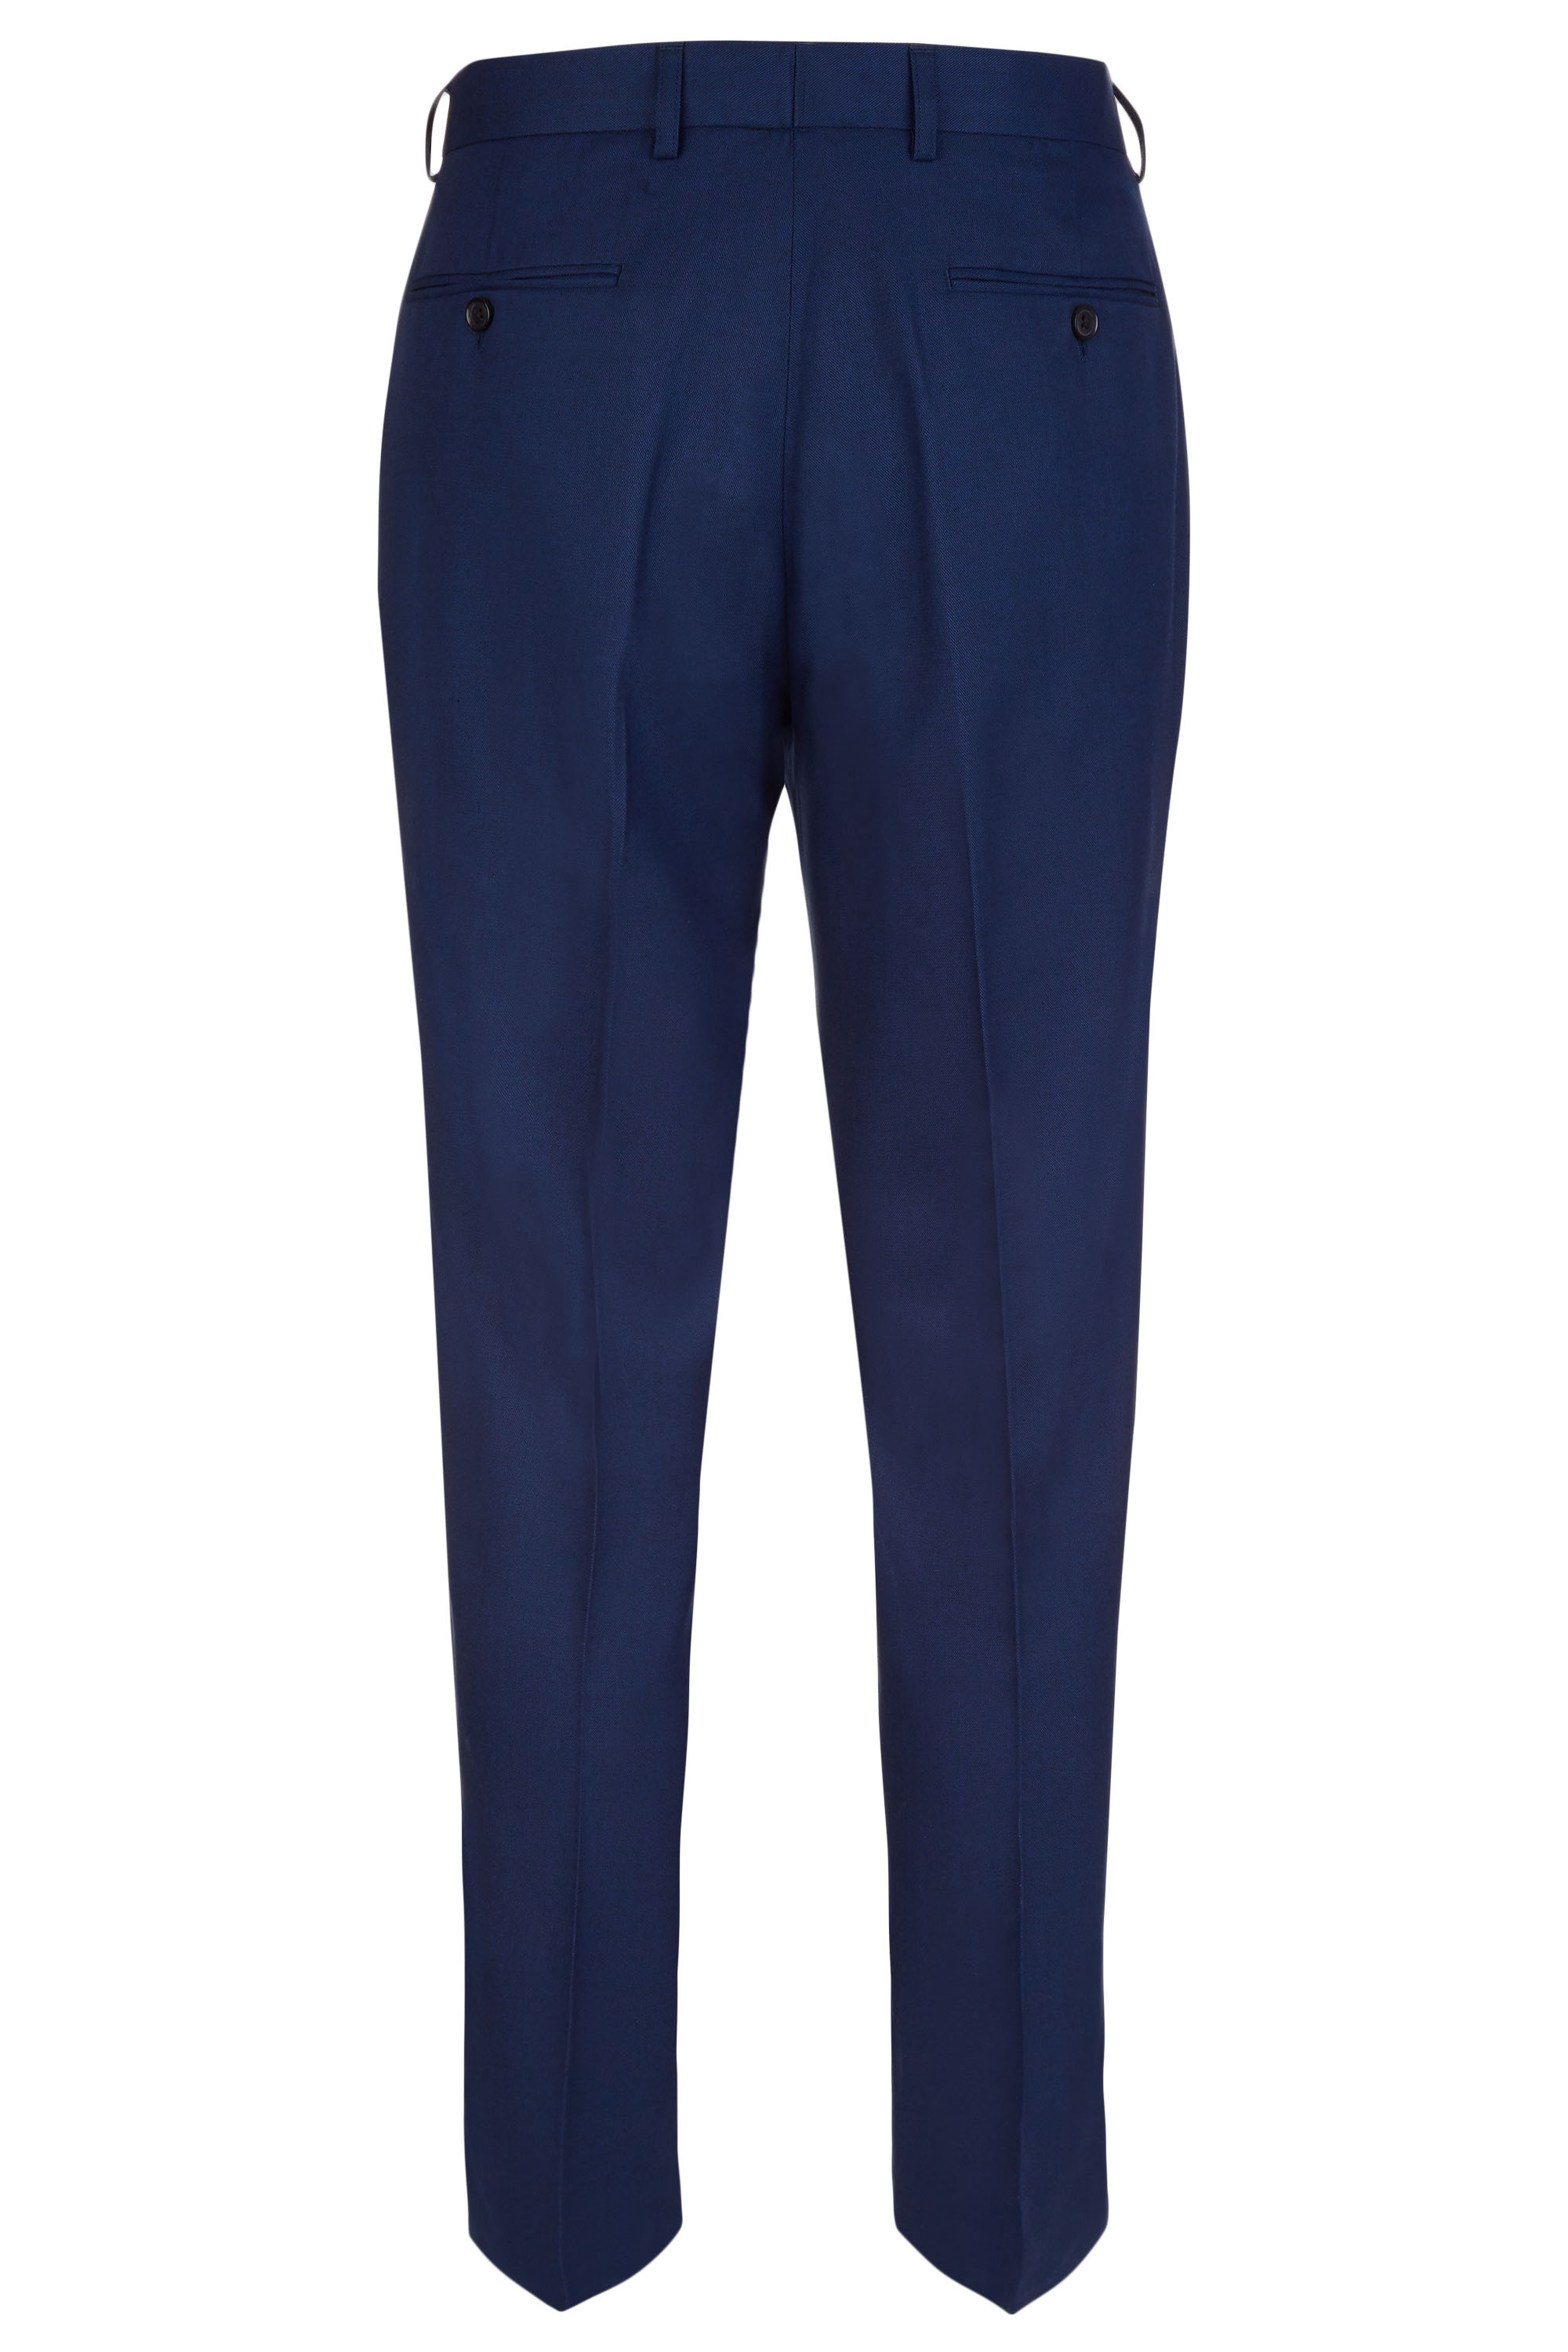 Moss Esquire Mens Navy Blue Suit Trousers Slim Fit Pleated Formal Pants   EBay